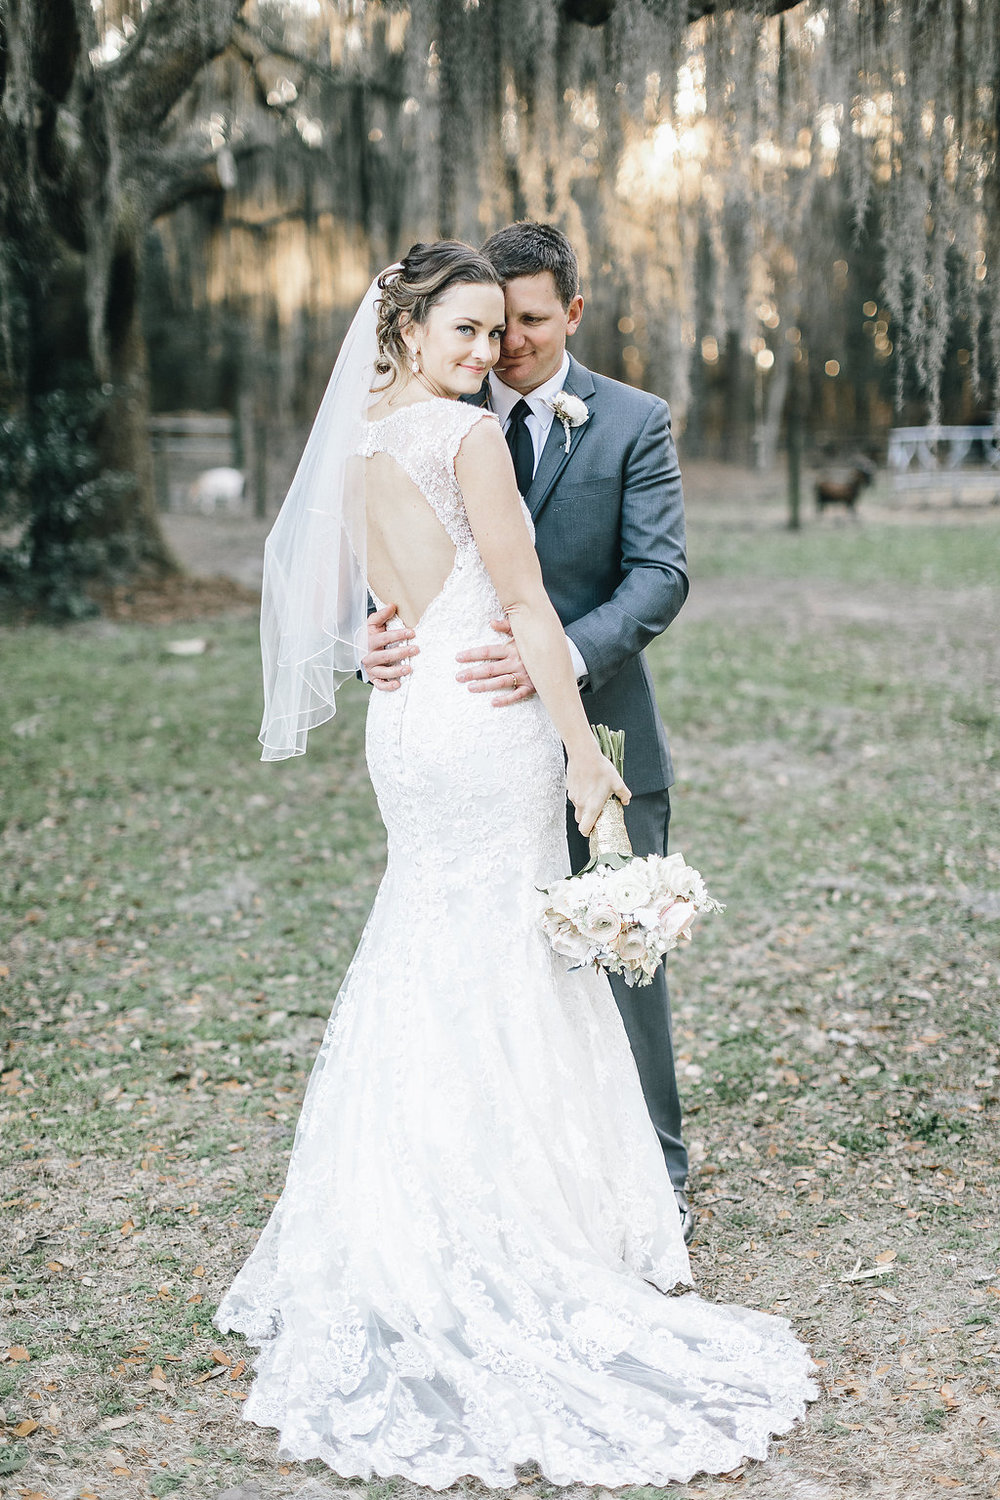 Lowcountry wedding in Savannah, GA